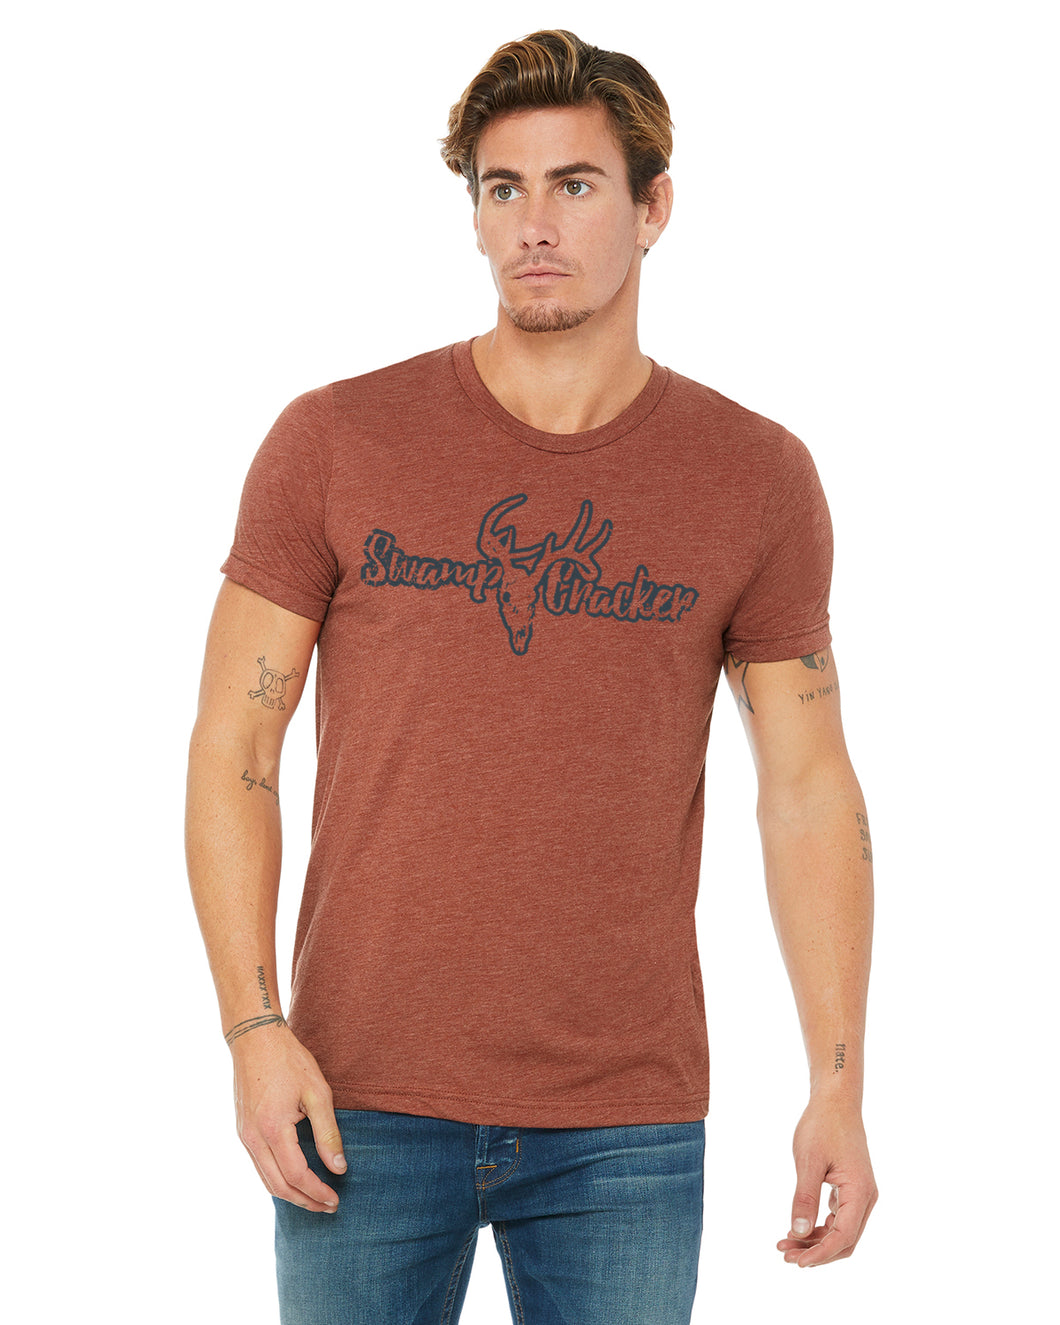 Swamp Cracker Tri-blend Soft Logo Shirt